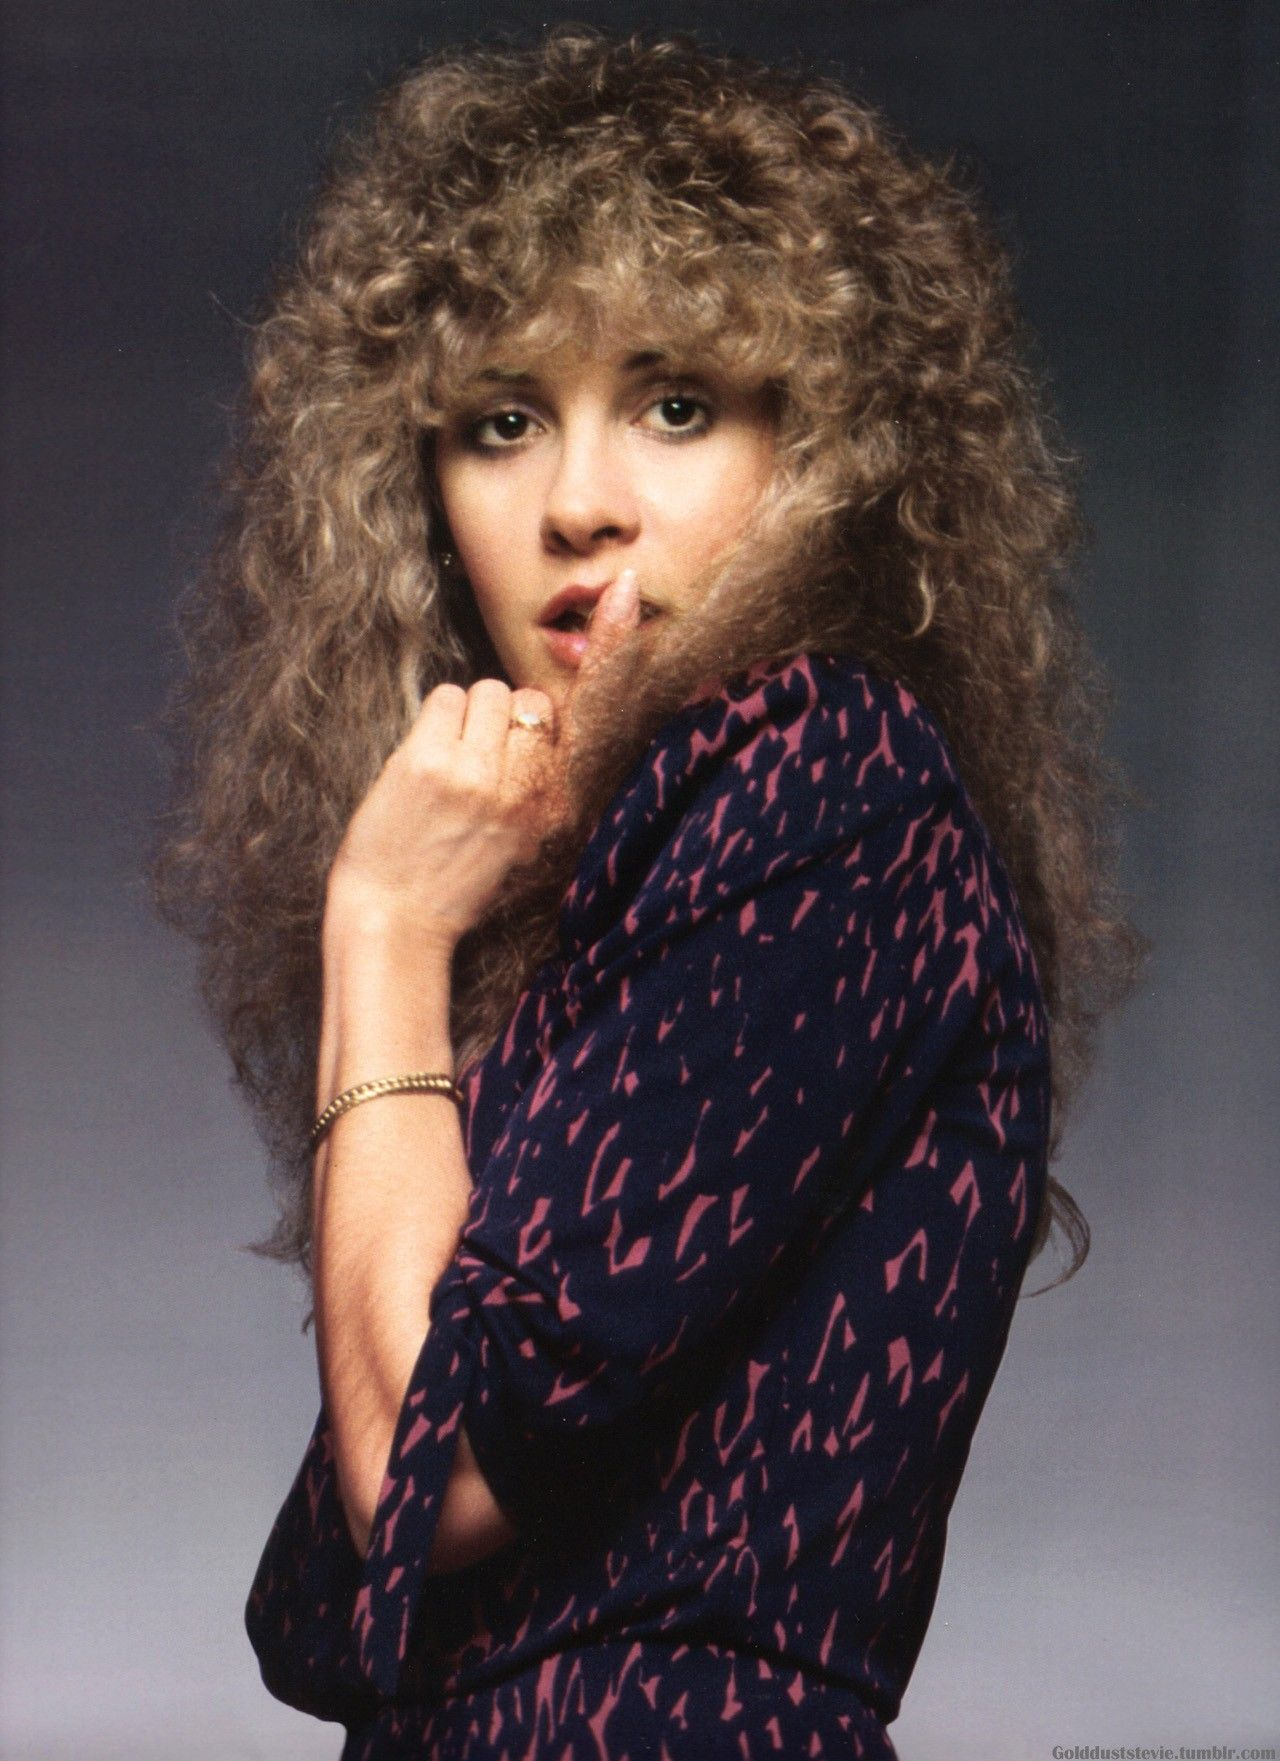 Stevie Nicks Fleetwood Mac Stevie Nicks Stevie Nicks Fleetwood Mac Stevie